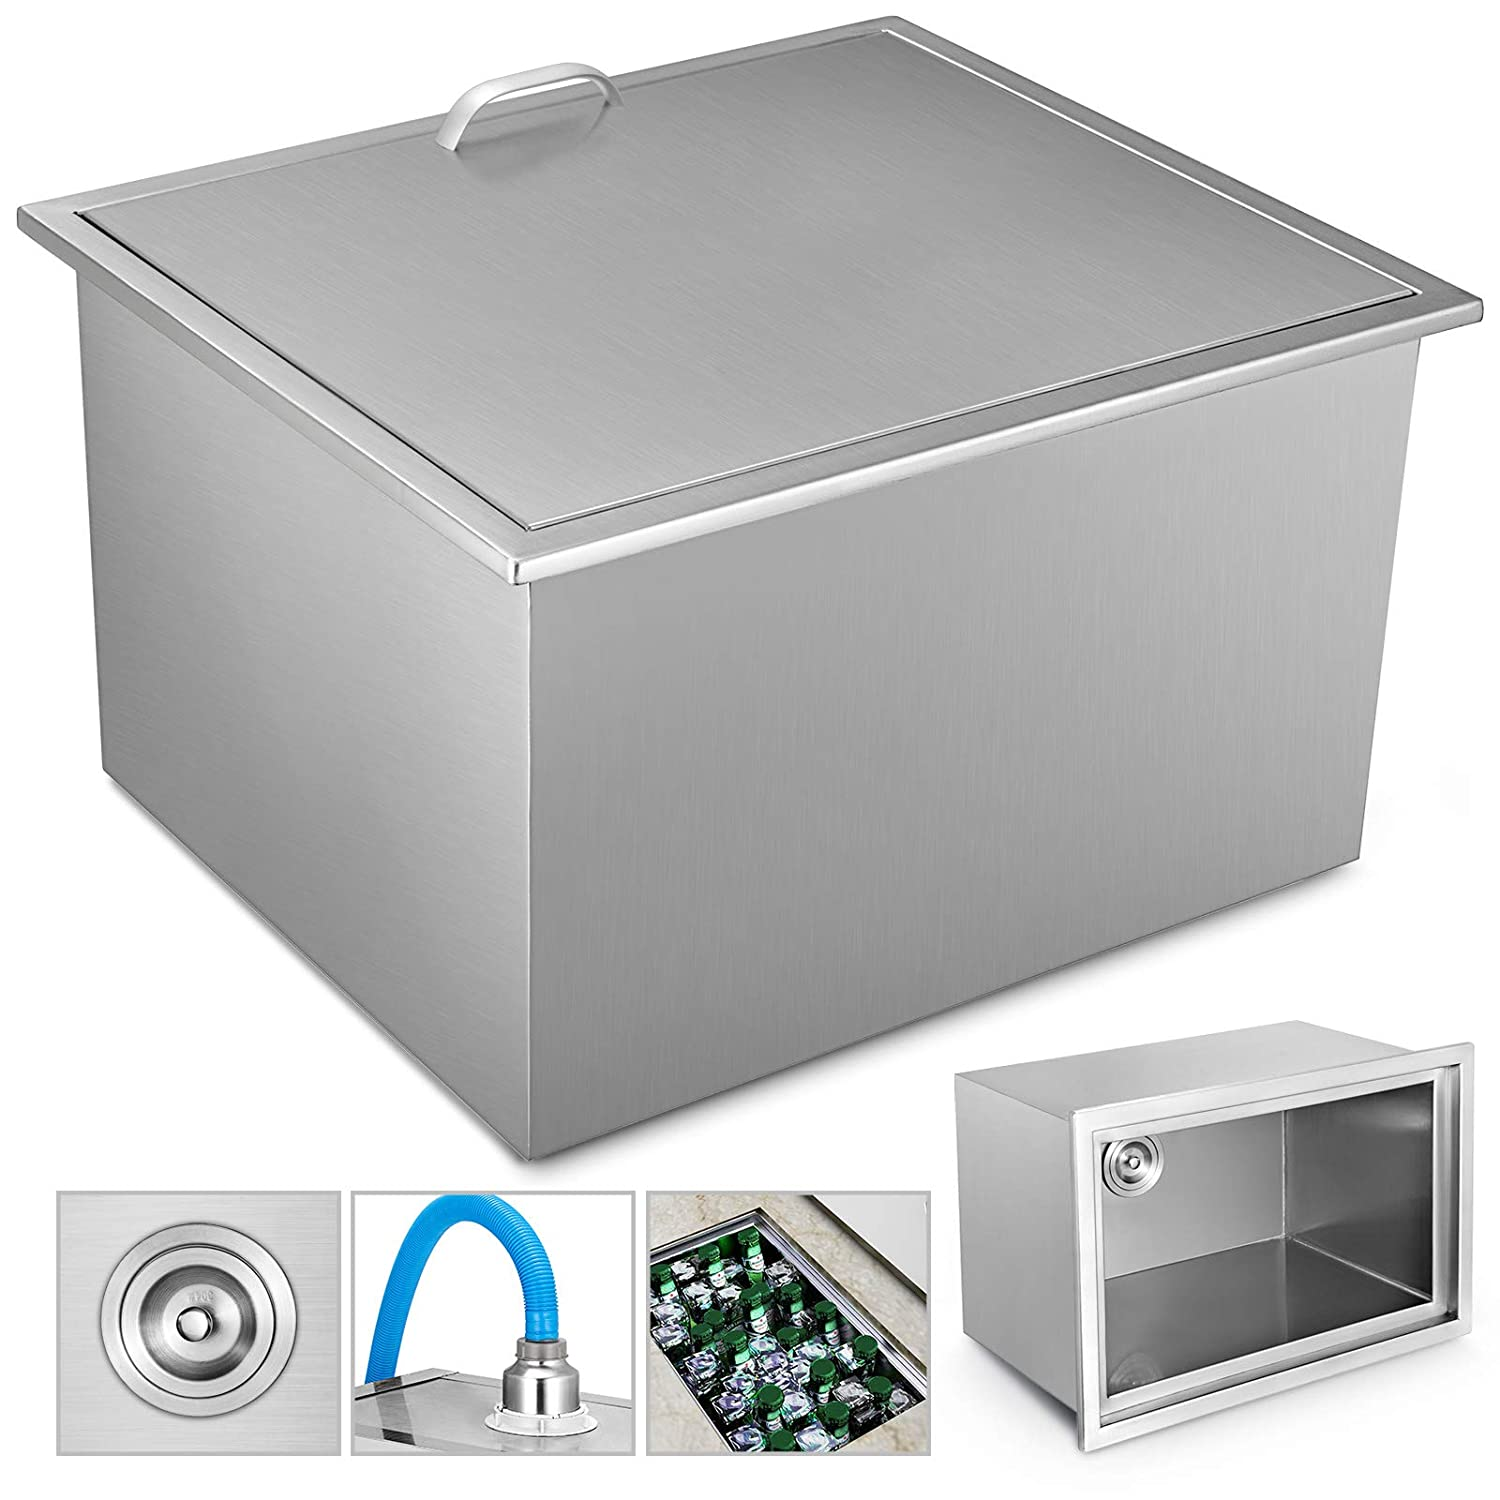 """VEVOR 23"""" x 17"""" Drop in Ice Chest Bin 304 Stainless Steel Ice Chest with Cover 23x17x12 Inch Drop in Cooler for Wine Beer Juice"""